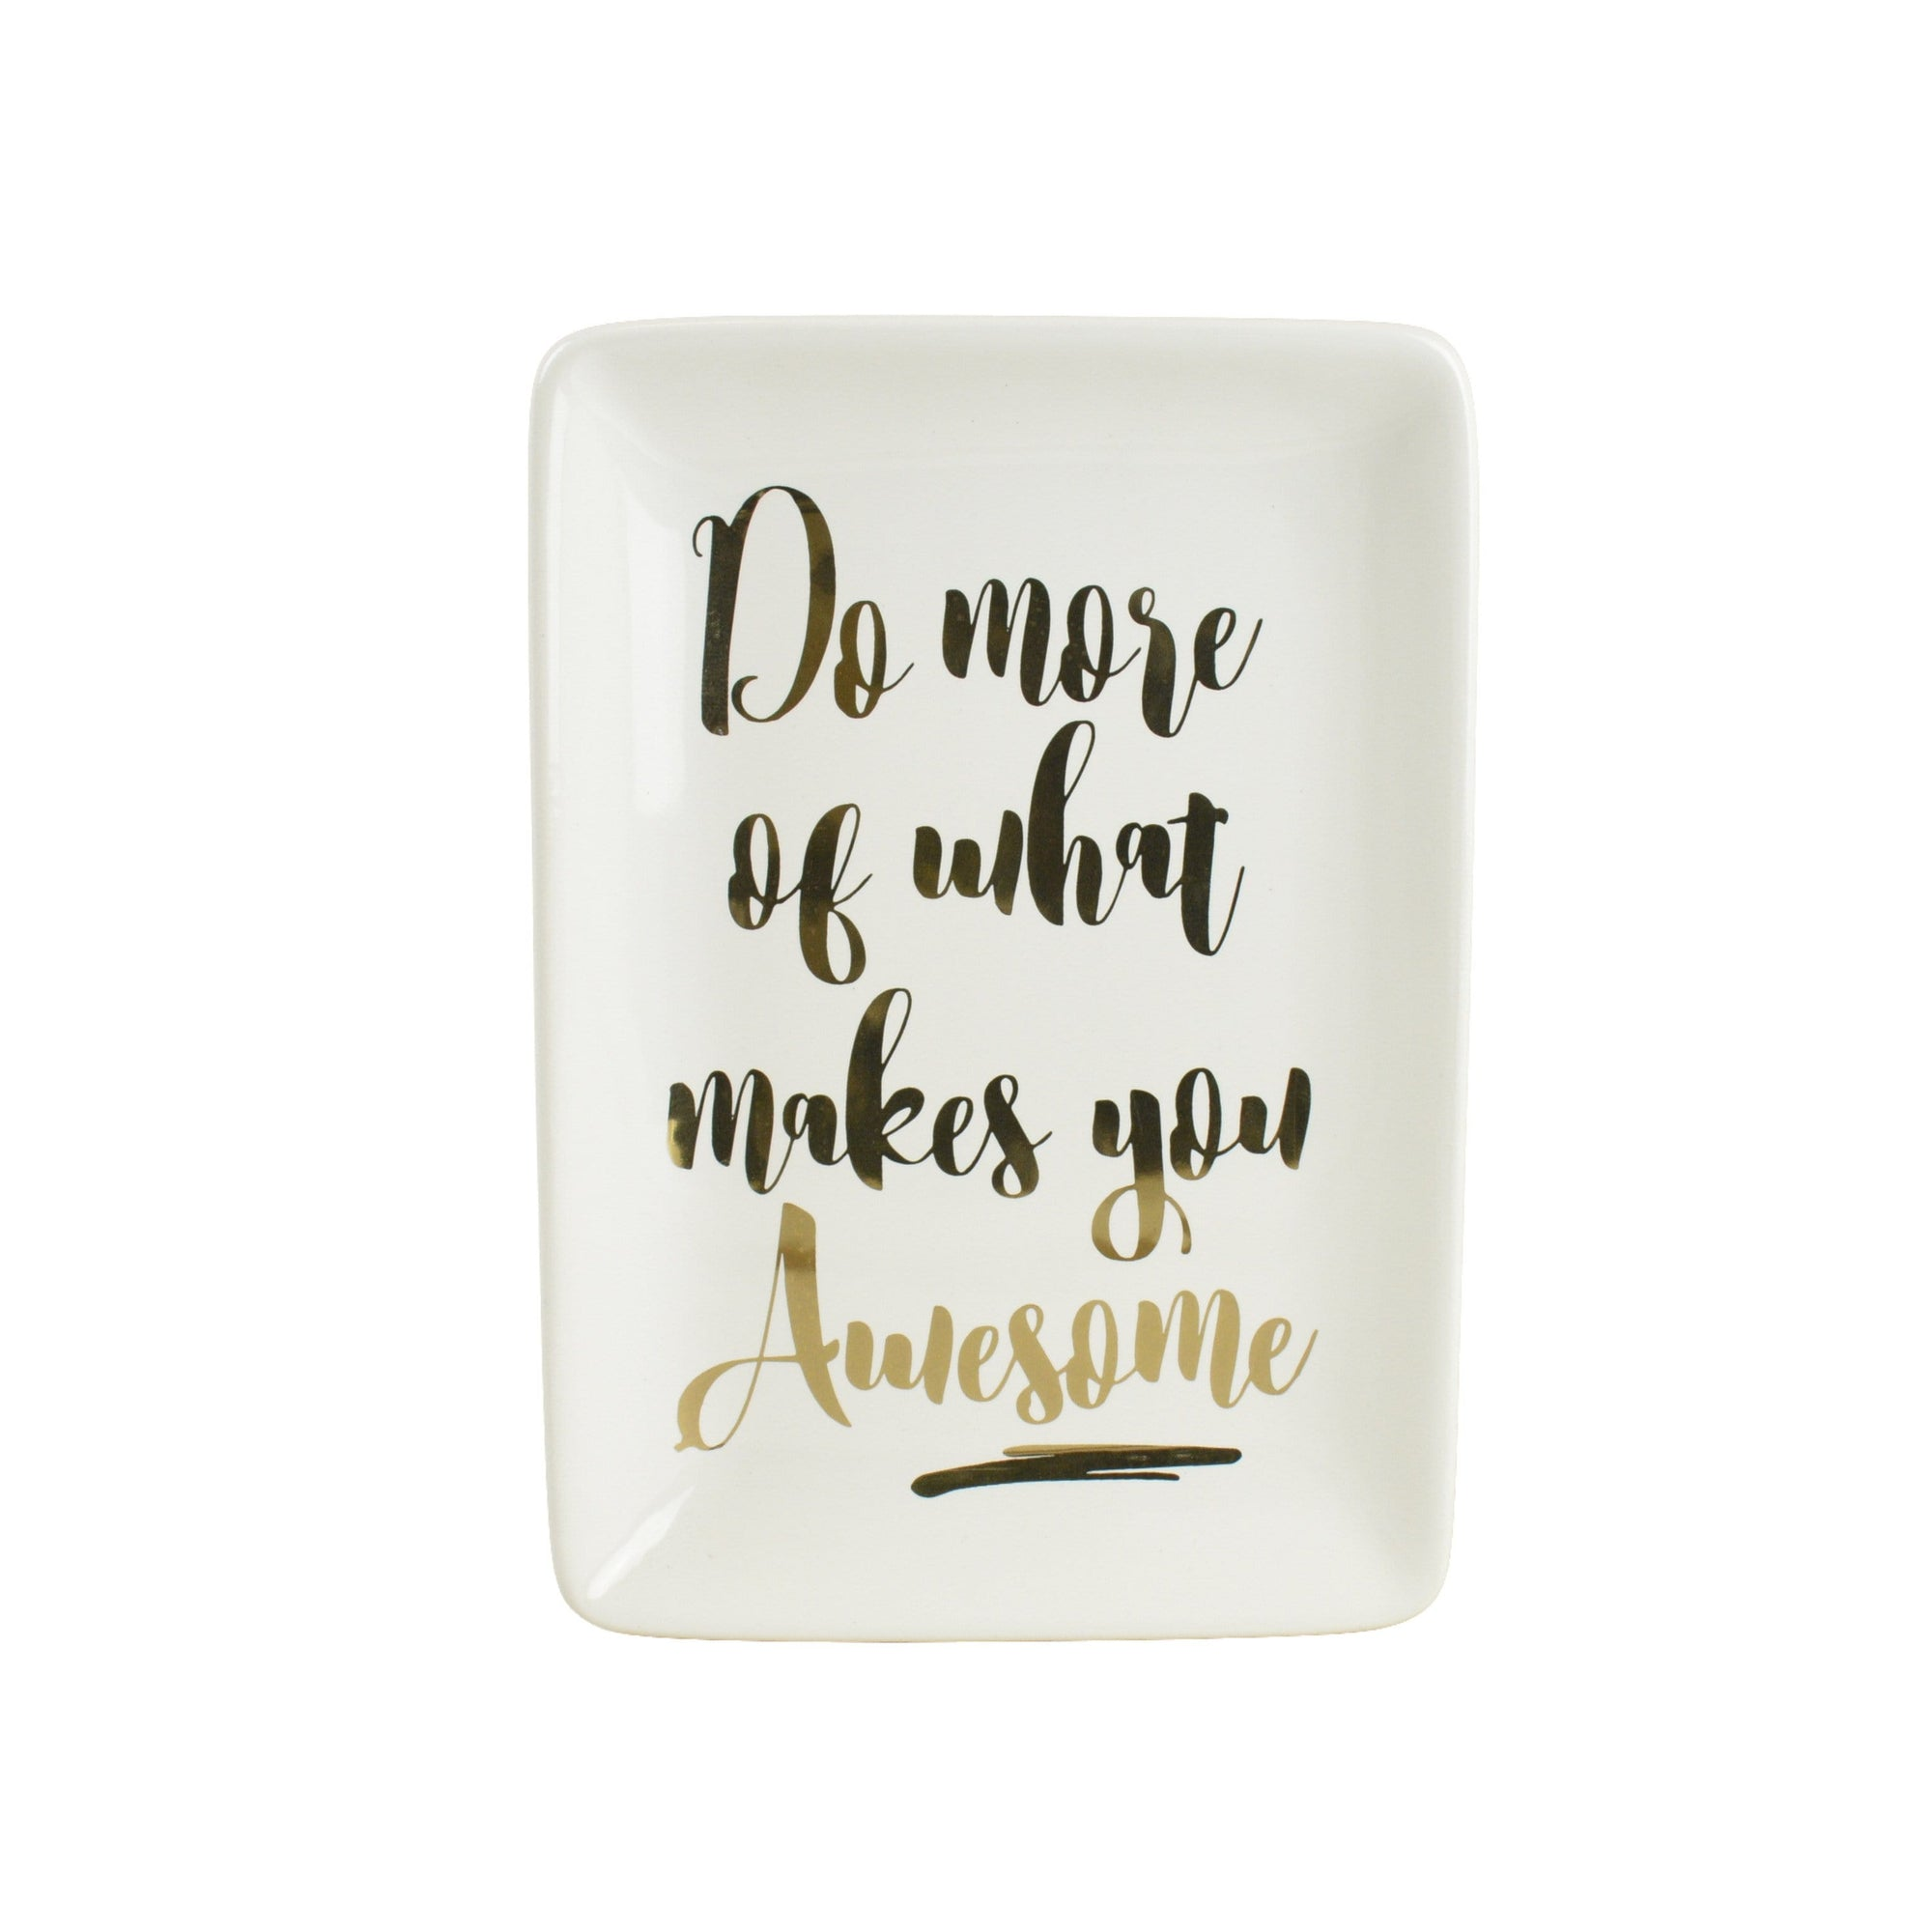 What Makes You Awesome Rectangular Trinket Dish White and Gold 18cm 6PK